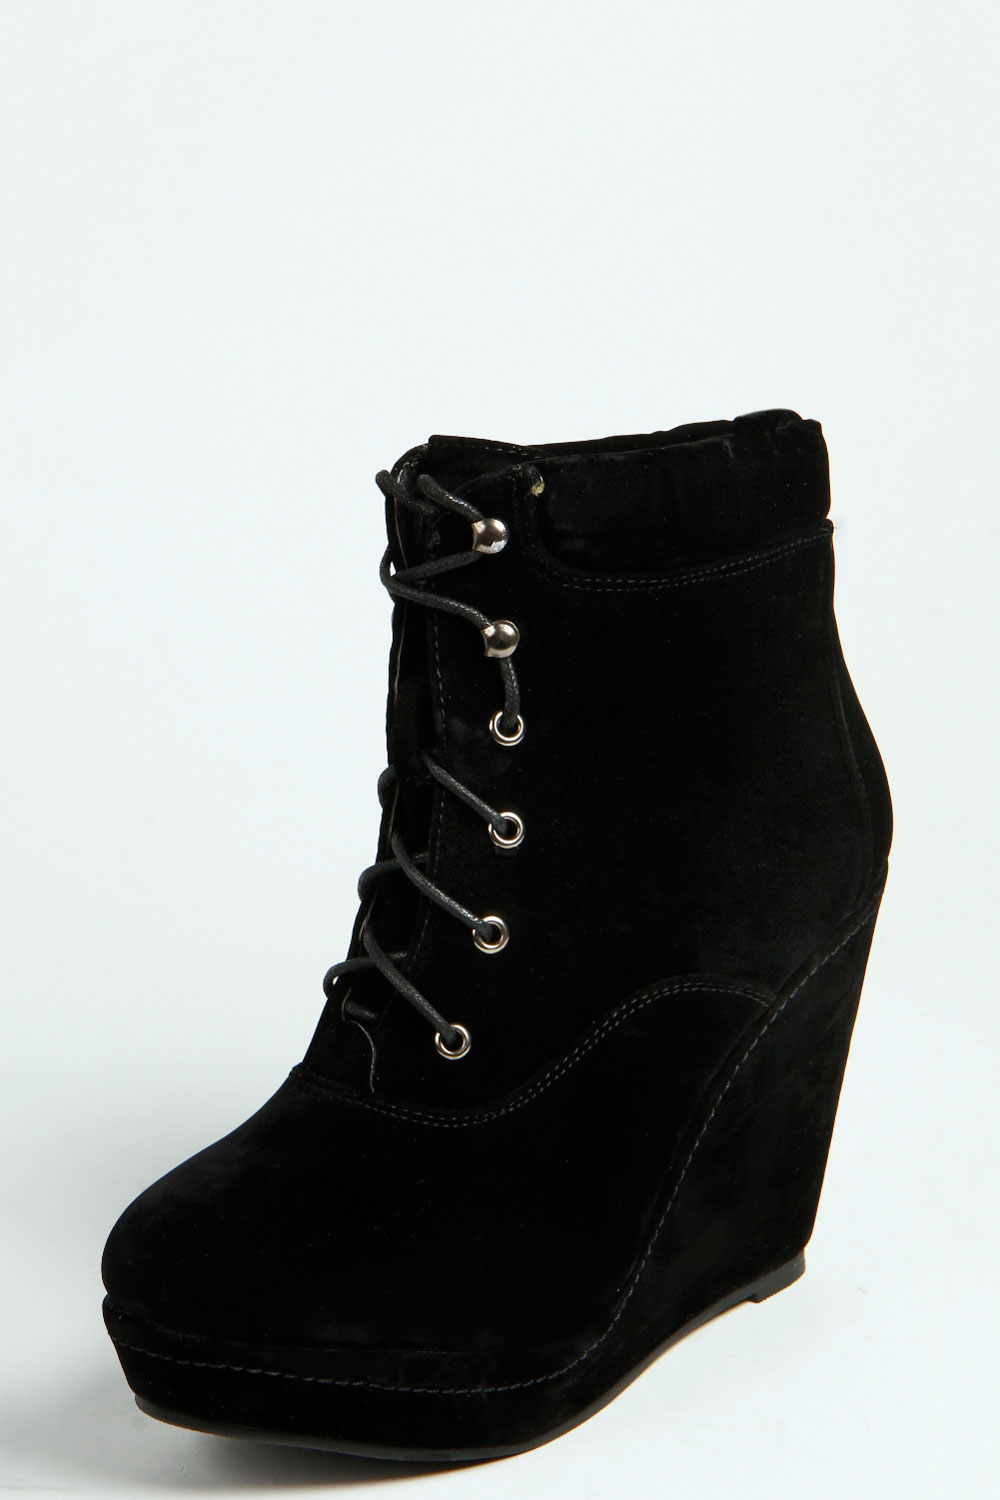 boohoo lace up wedge shoe boots ebay